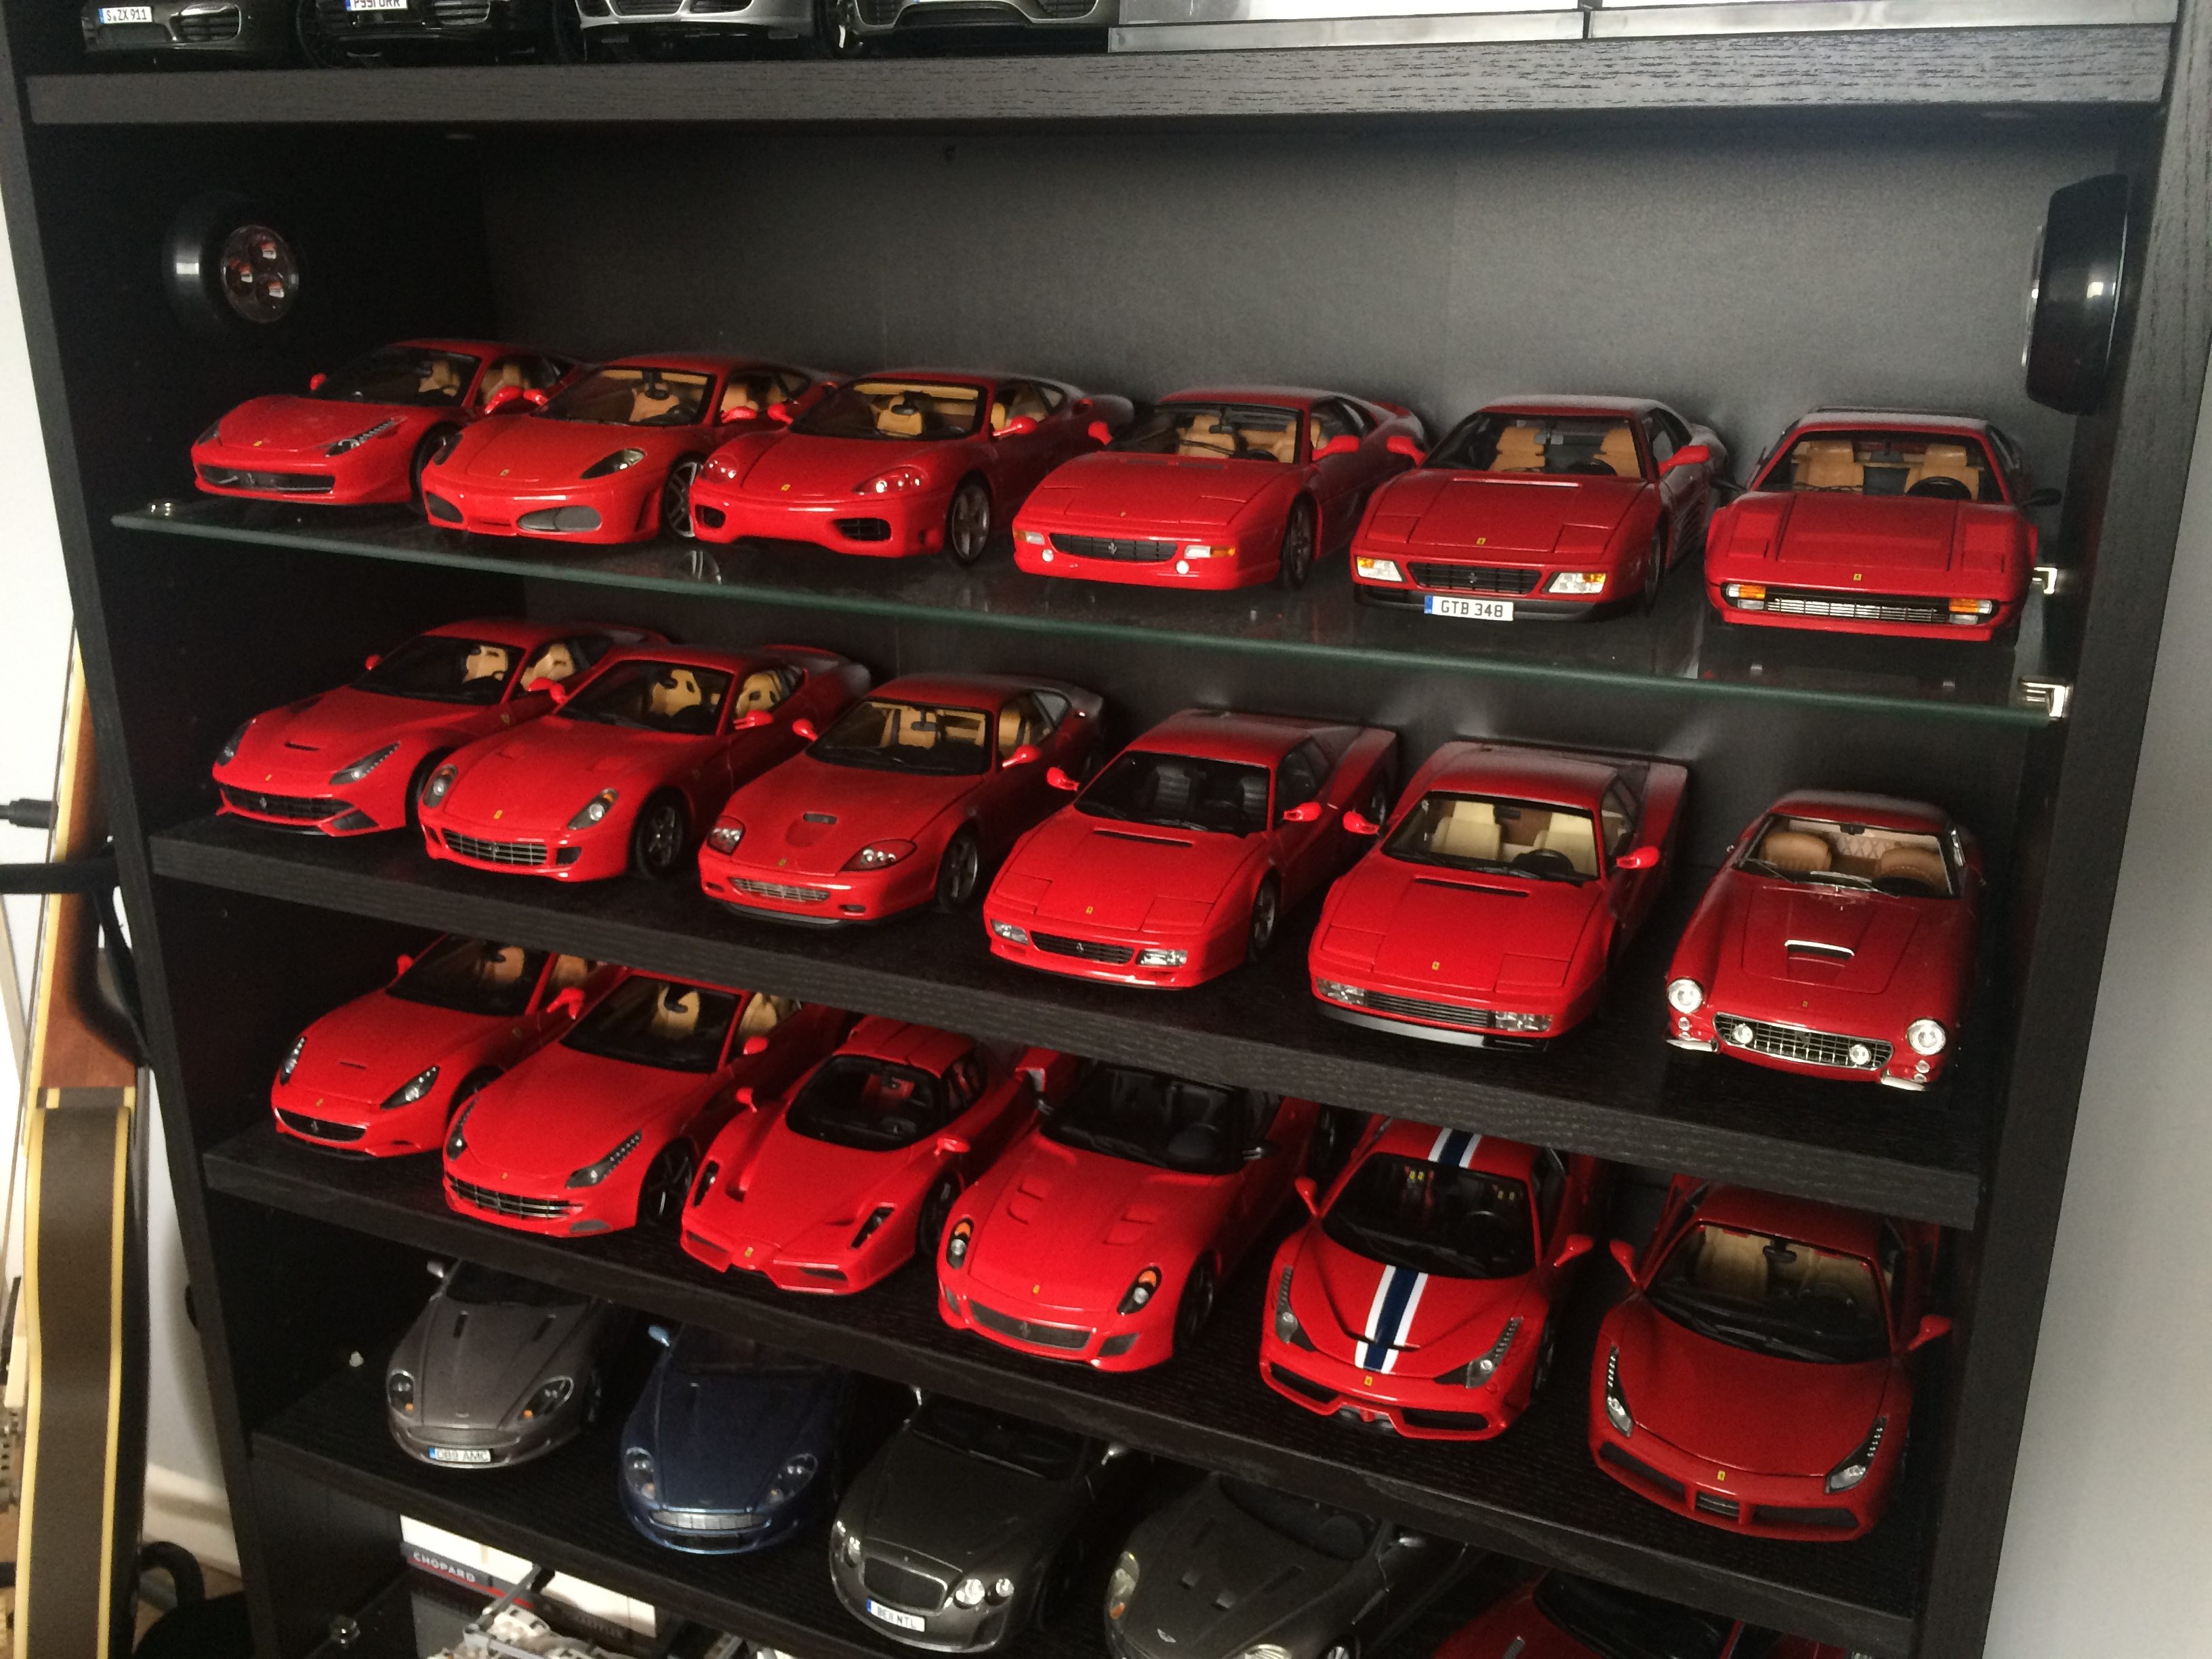 aadc047a9f Current 1 18 Ferrari collection